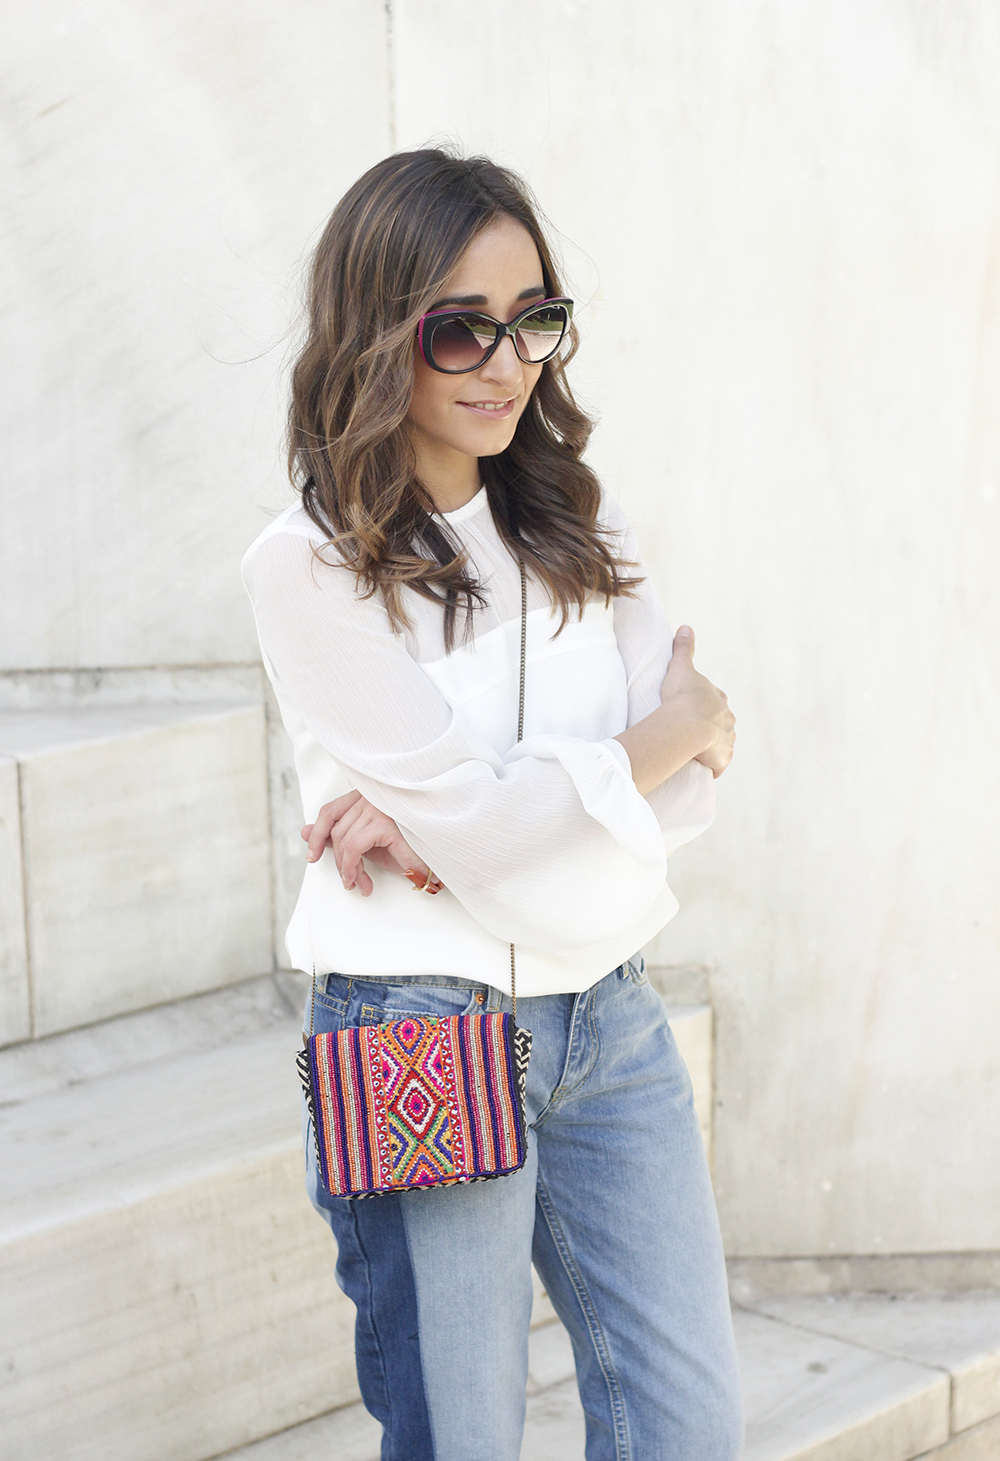 Boyfriend Jeans With Asymmetrical Hems white blouse carolina herrera heels daydaday bag outfit style streetstyle21